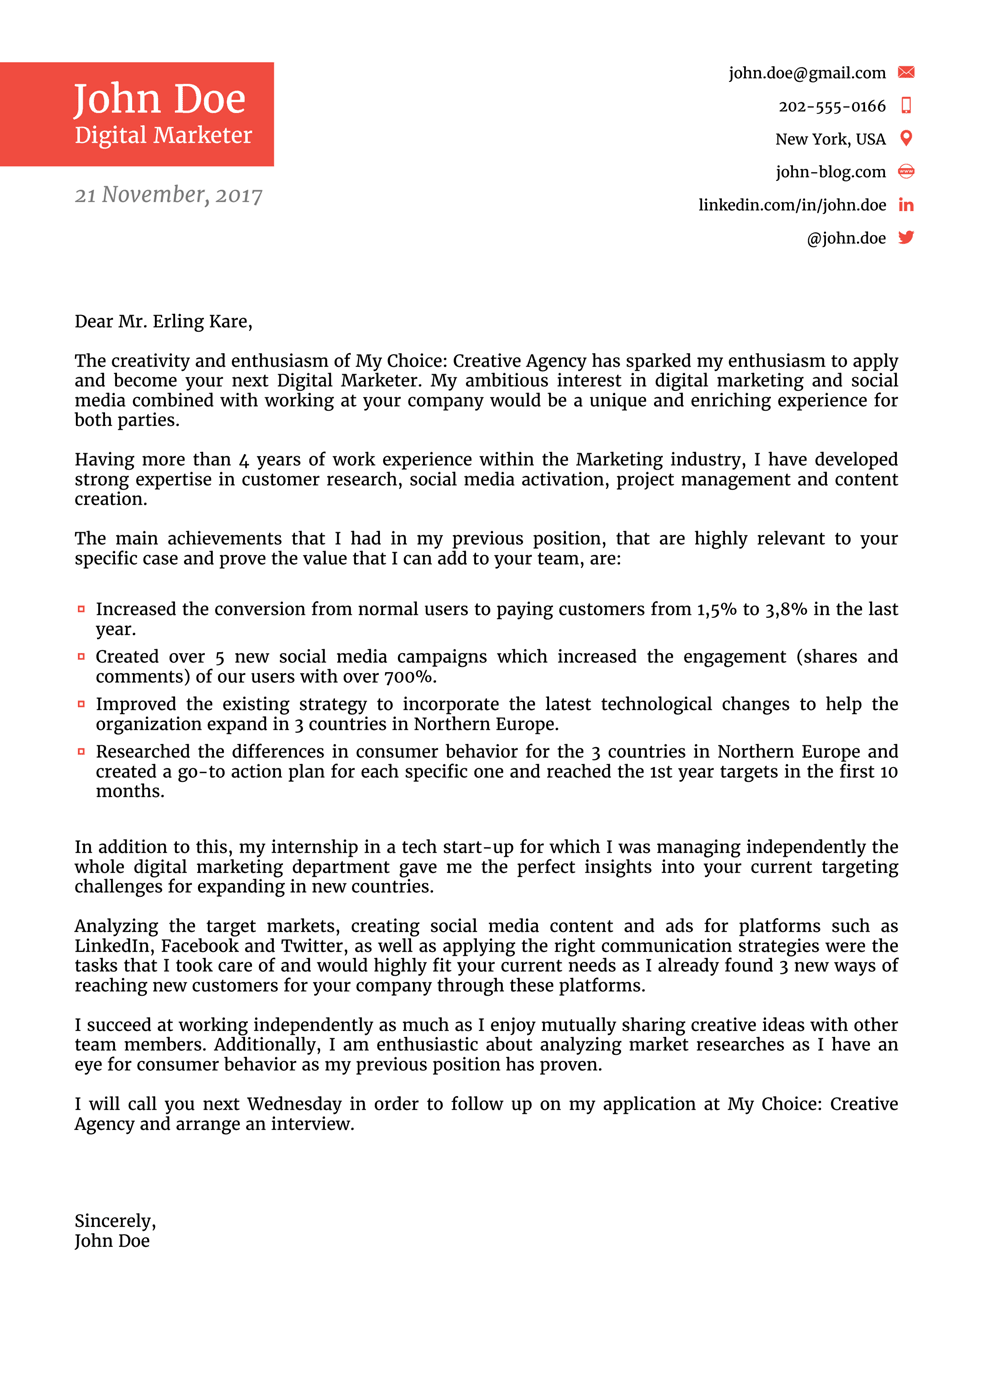 Cover Letter For Job General, Functional Cover Letter Template, Cover Letter For Job General